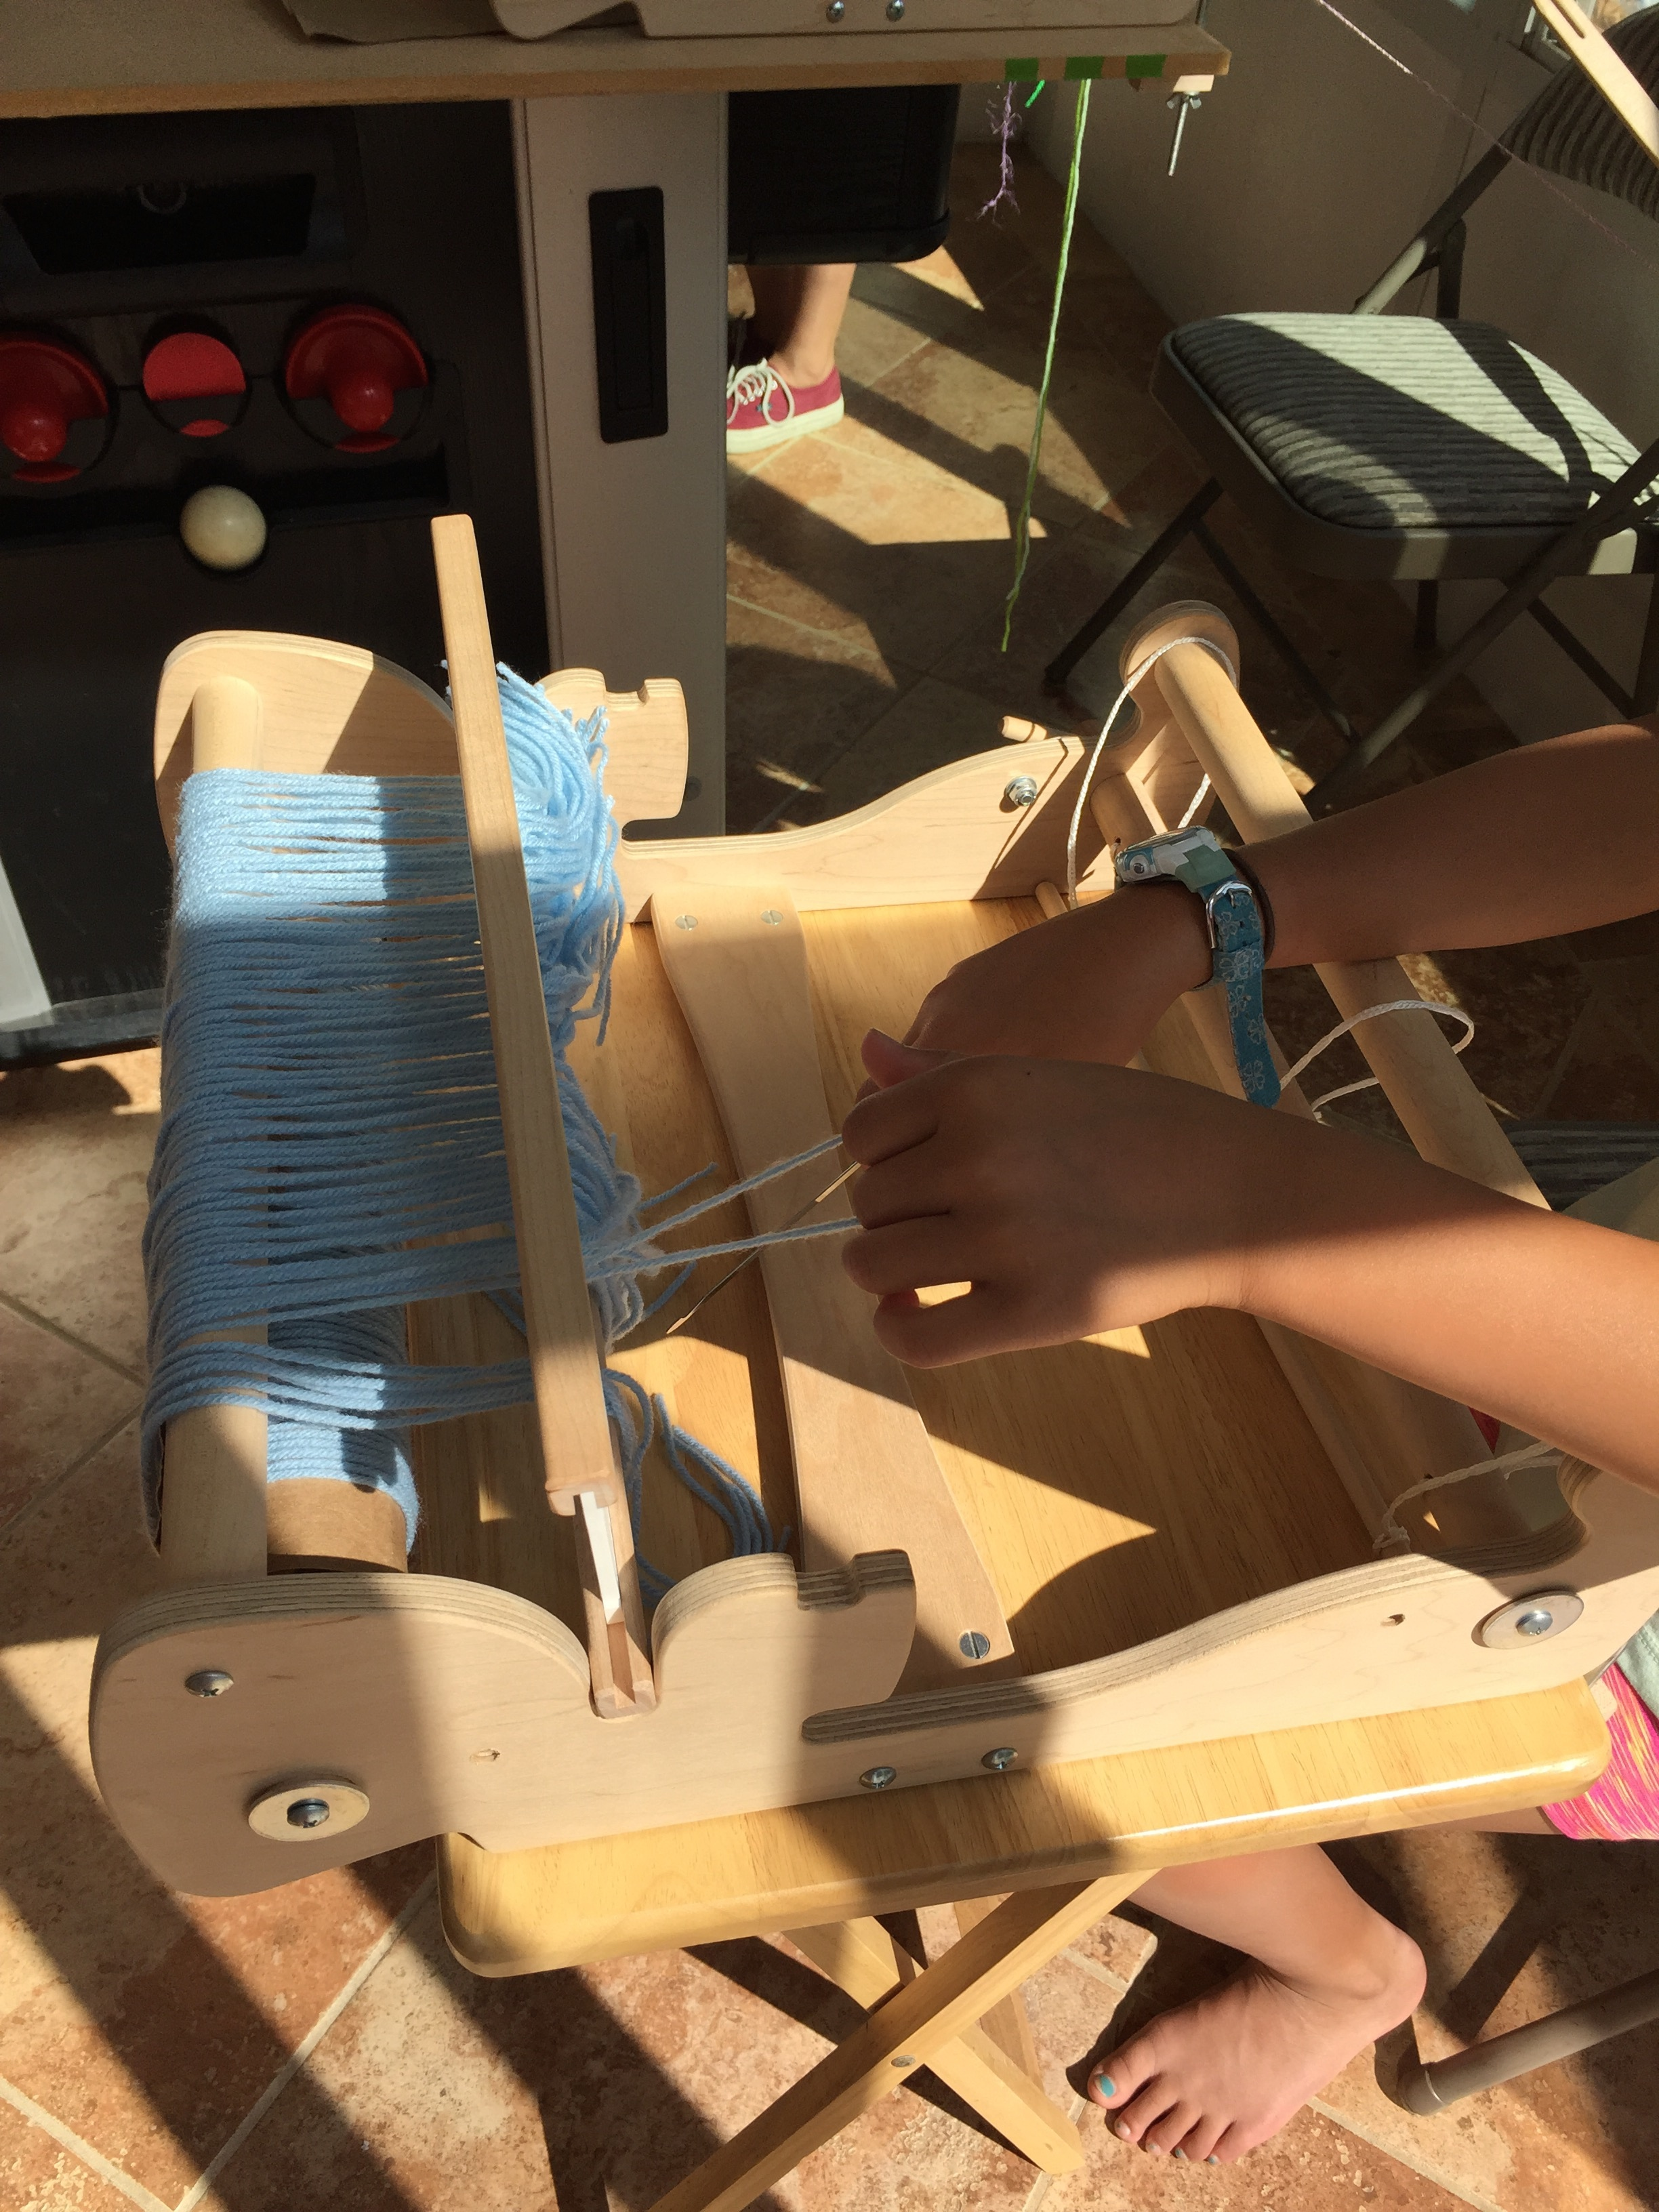 Warping a new project.